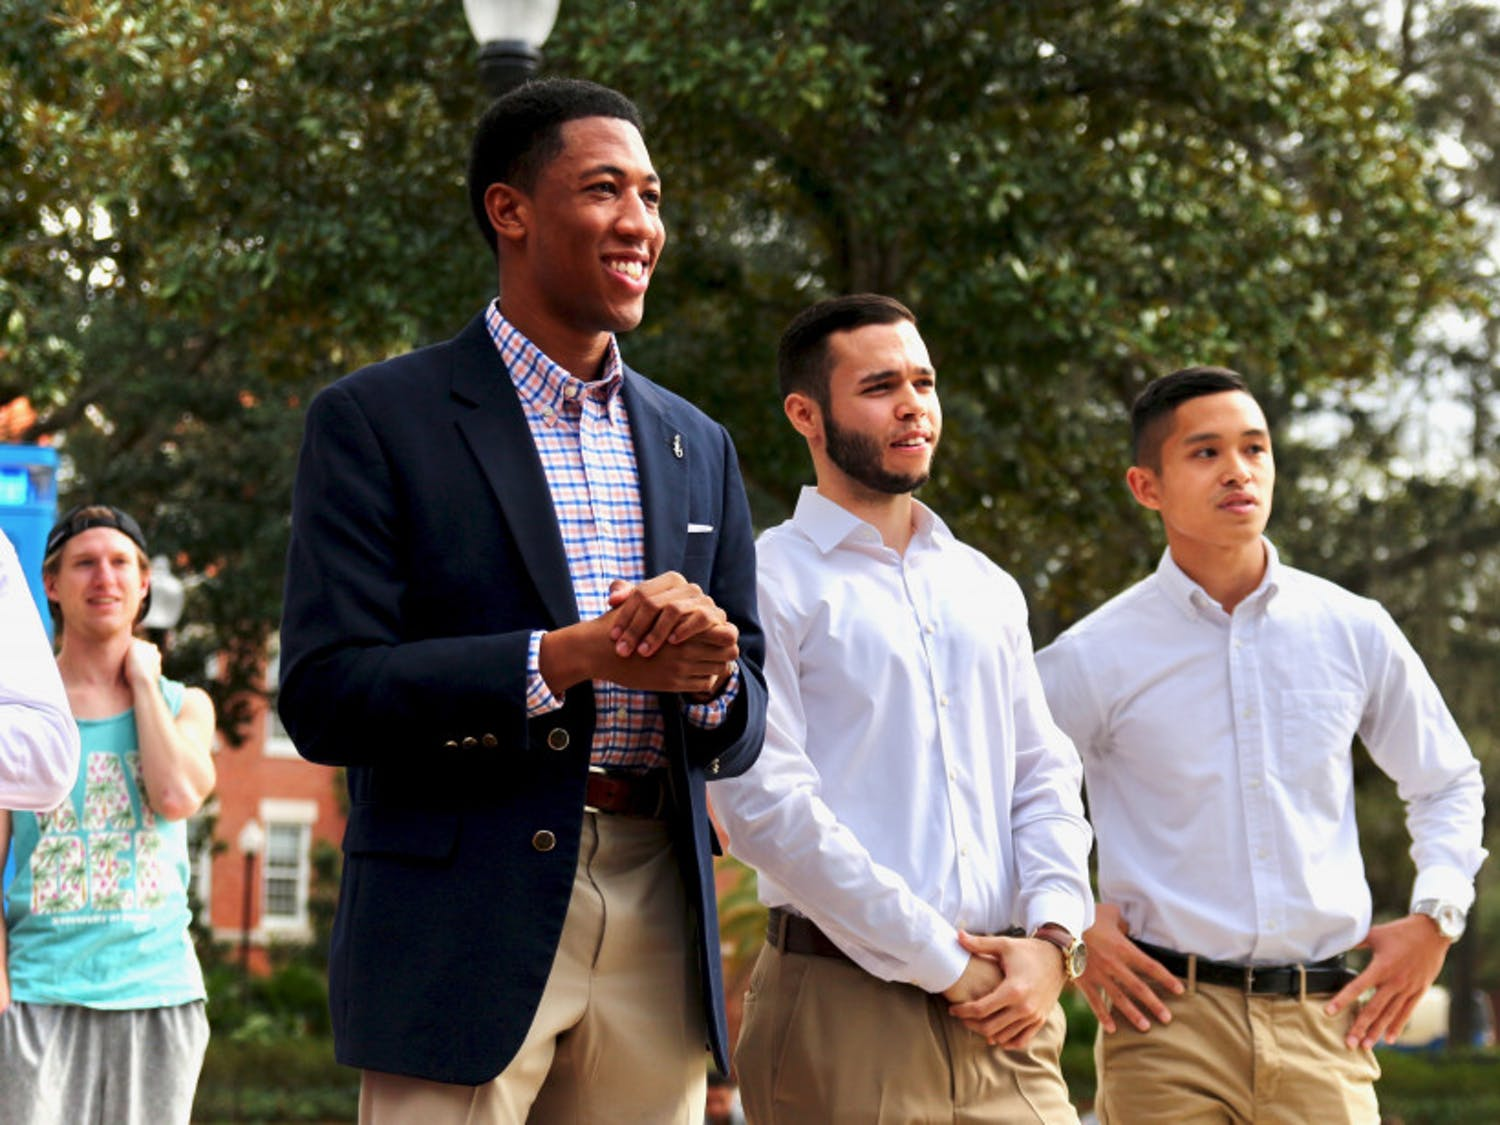 Impact Party announced their executive ticket at Plaza of the Americas Friday afternoon. Ian Green will be running for Student Body President, alongside David Enriquez as Vice President and Stefan Sanguyo as Treasurer.